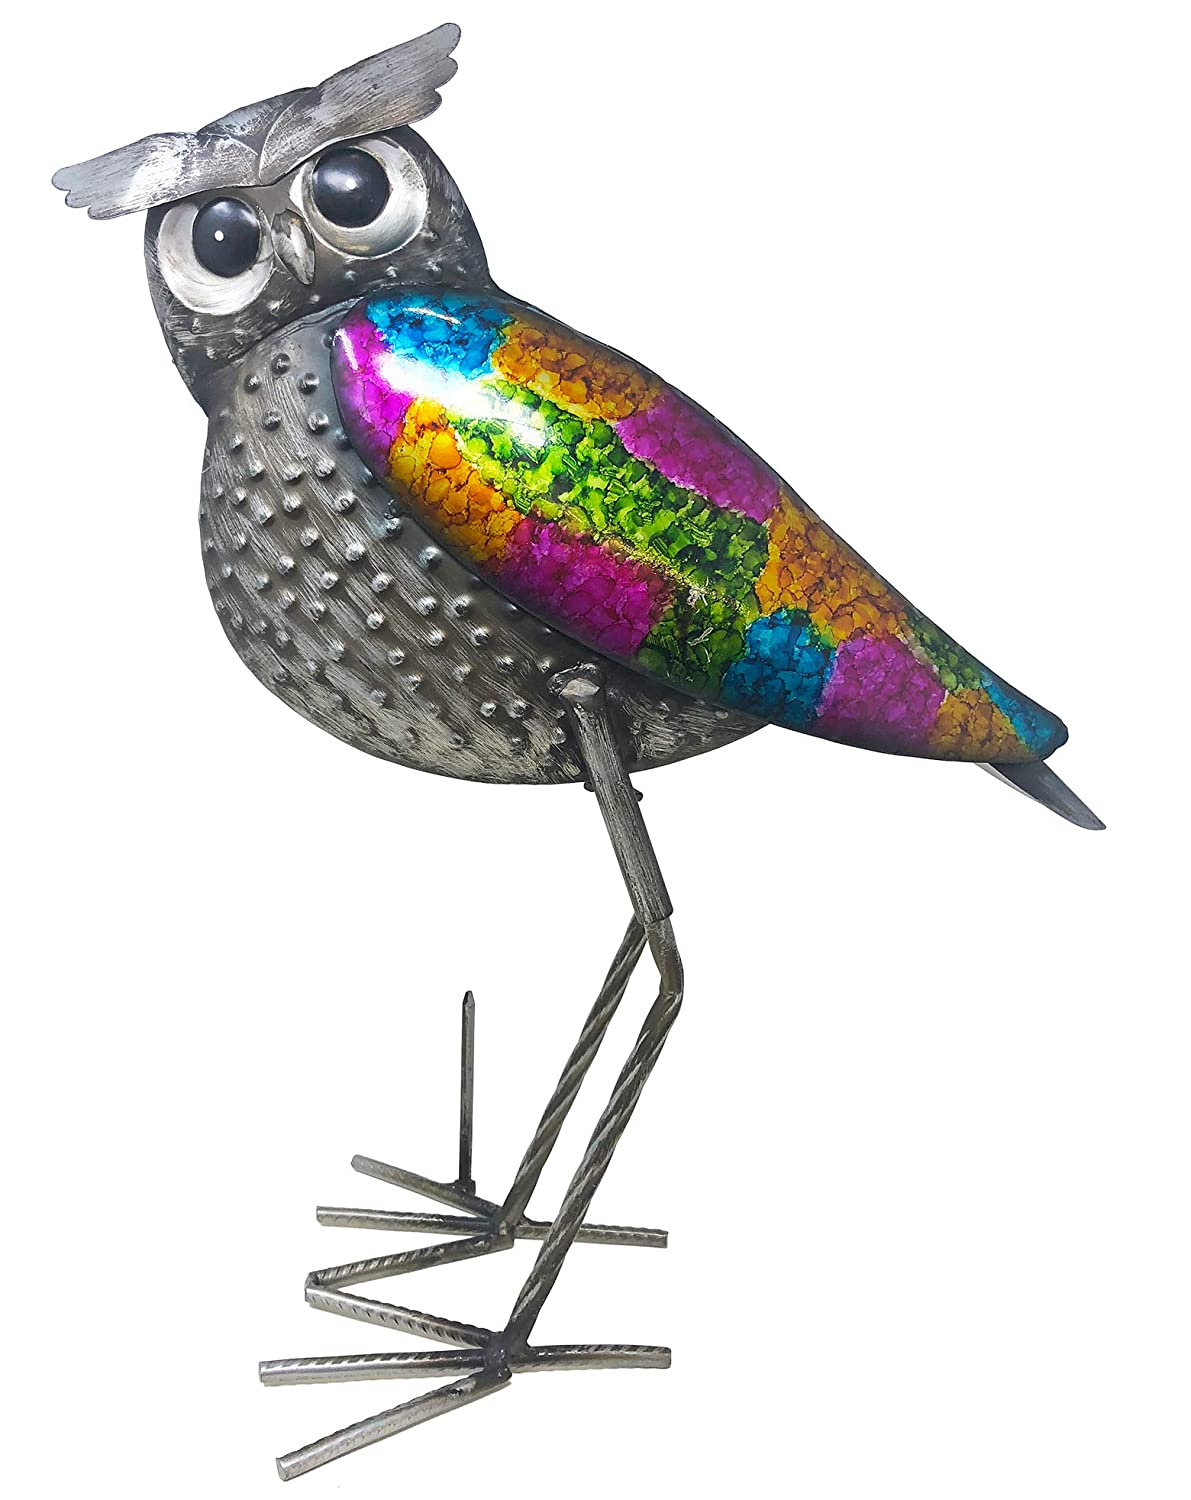 Decorative Iron Artwork for Homes Large 18 Multi-Color Owl SEVENM Metal Owl Sculpture Stable Standing Base with Spike Gardens Living Rooms Rustic Farmhouse Handmade Design Kitchens